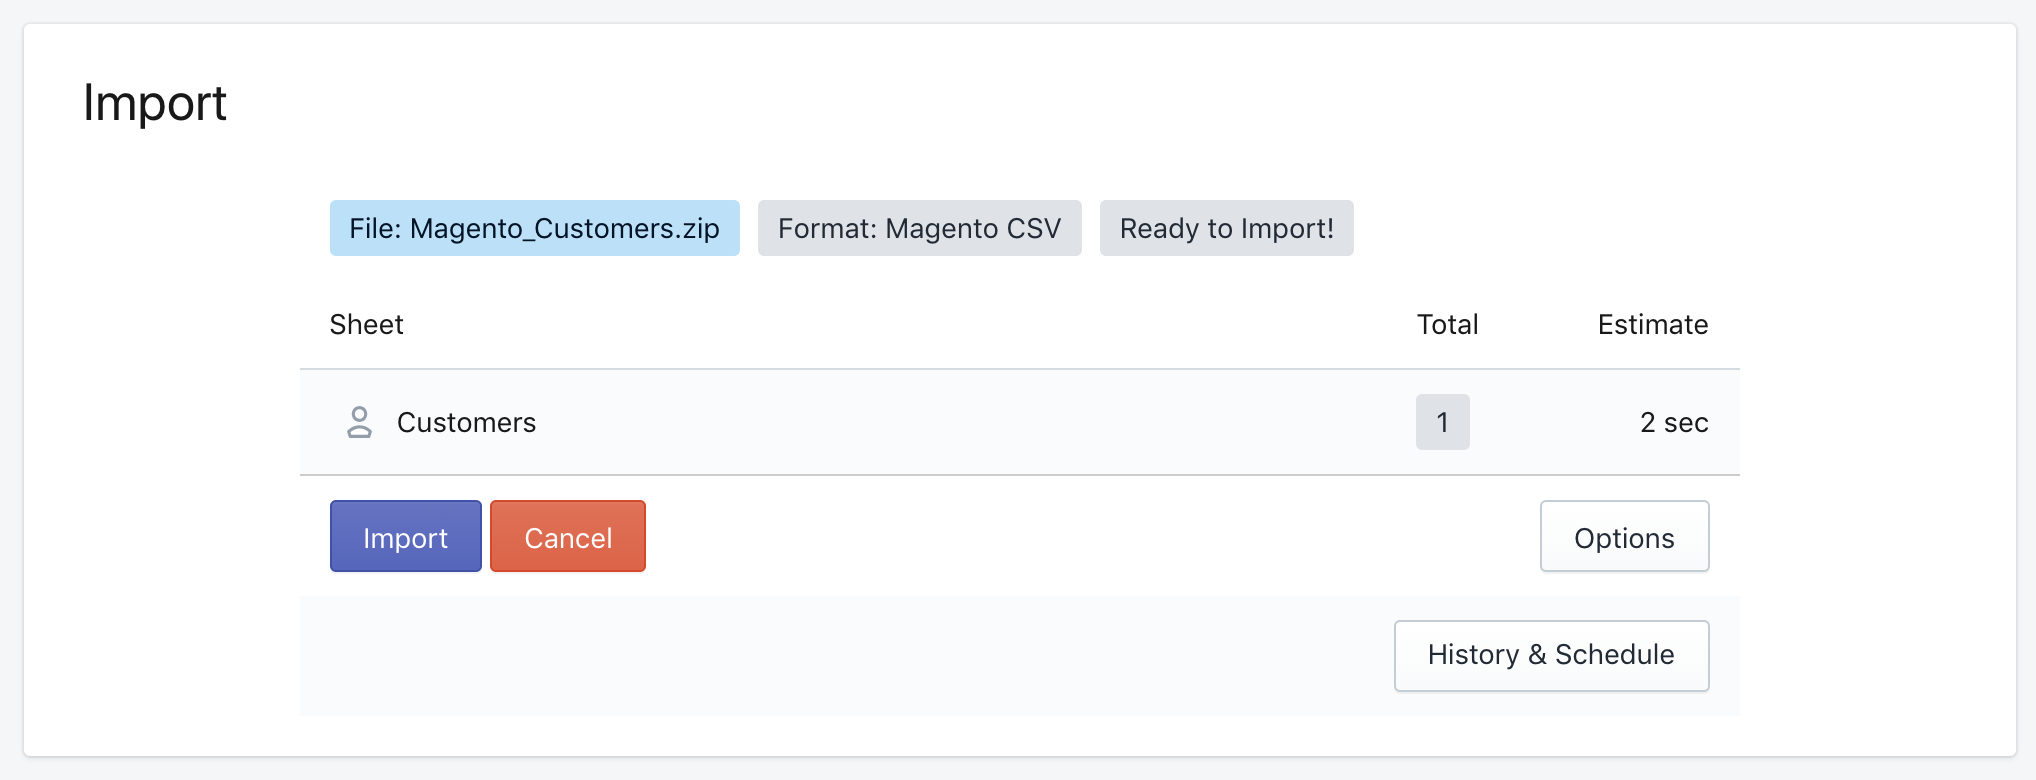 Migrate Customers from Magento v2 to Shopify - Excelify io